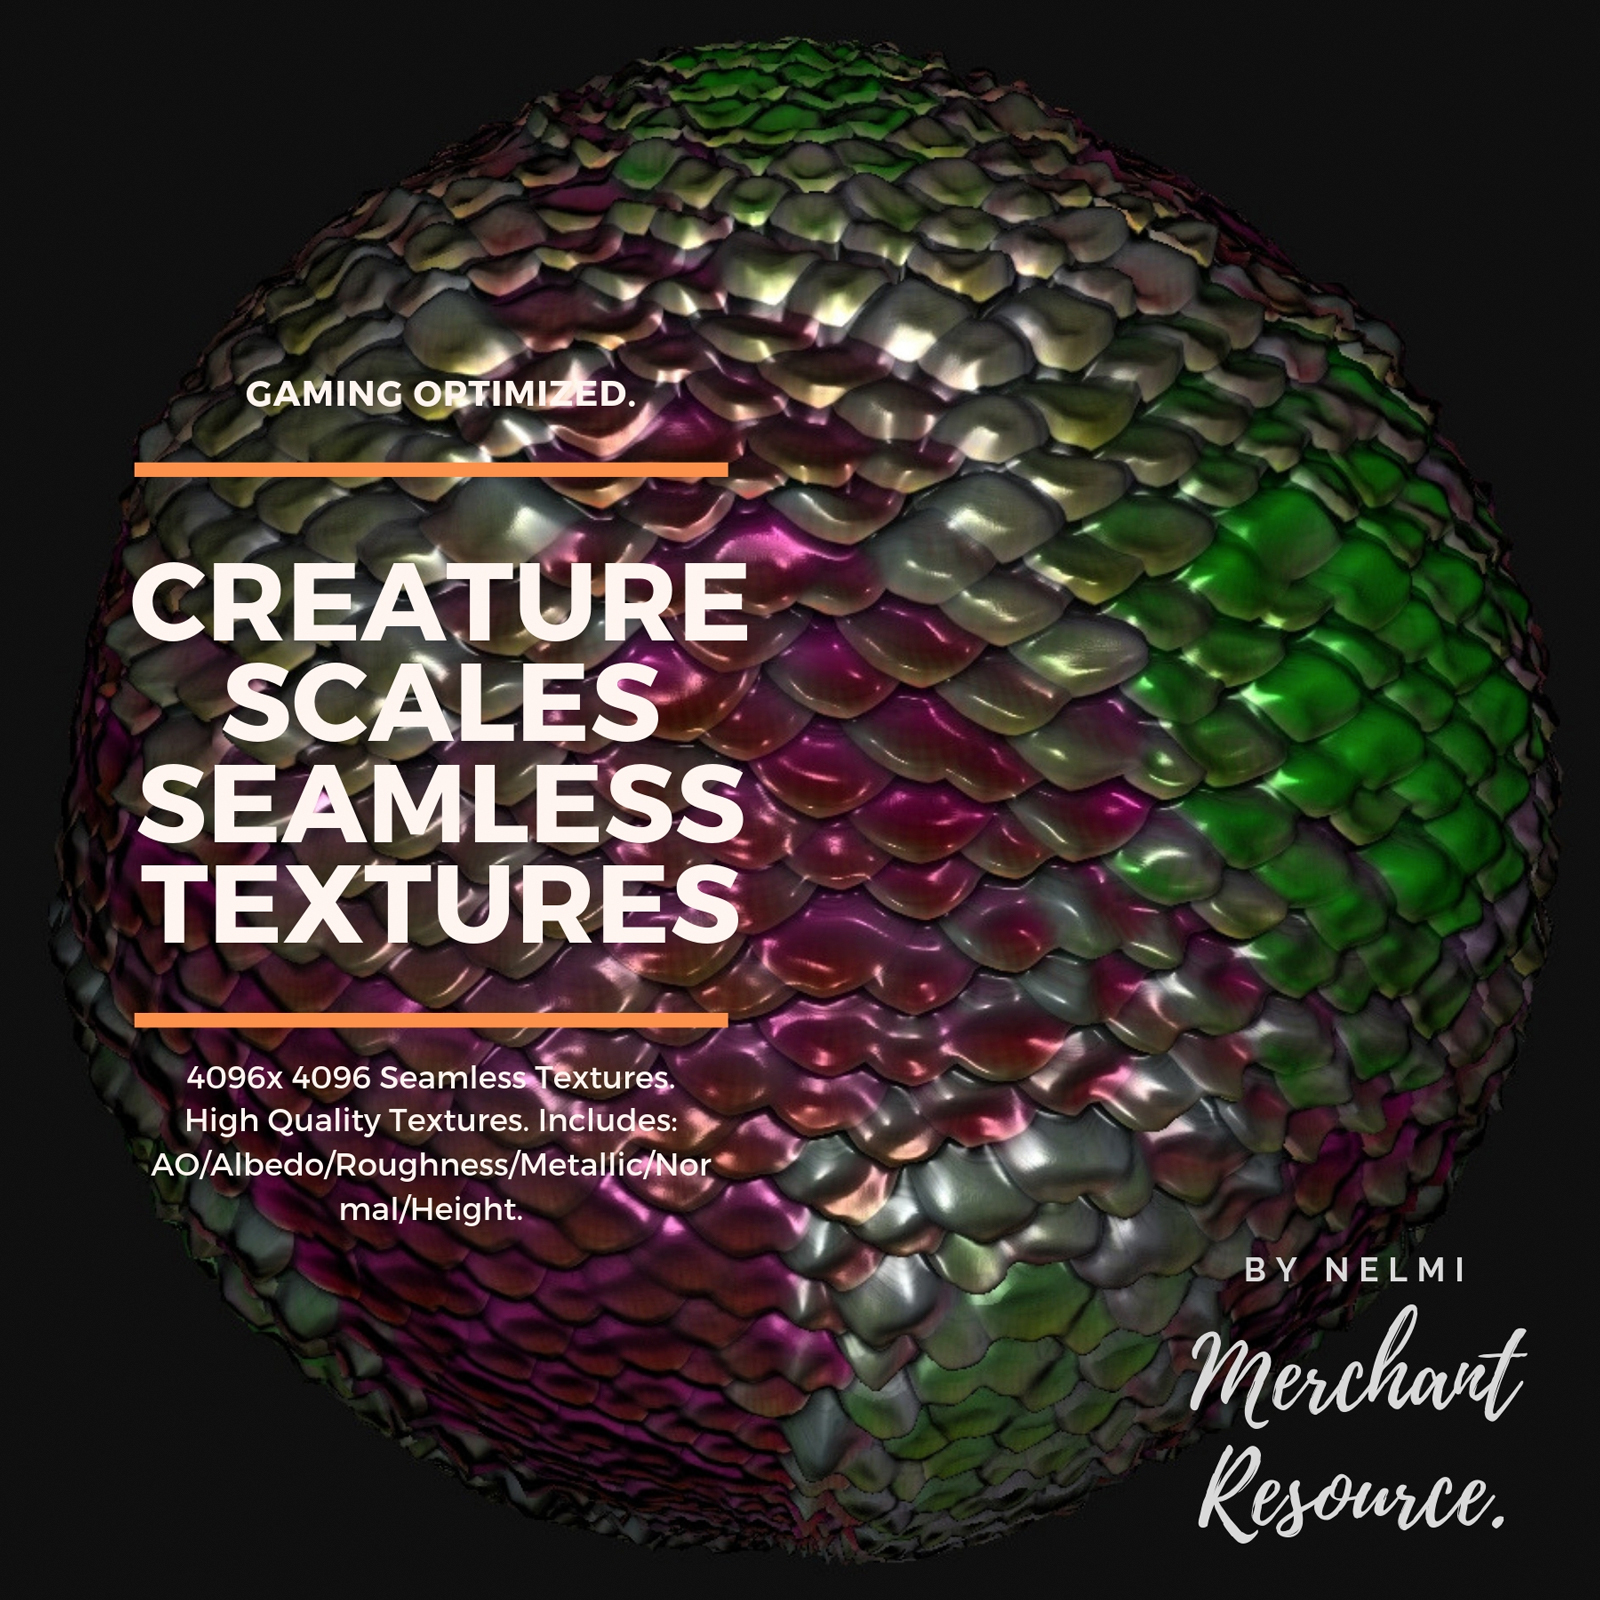 15 Creature Scales Textures with Texture Maps 2D Graphics